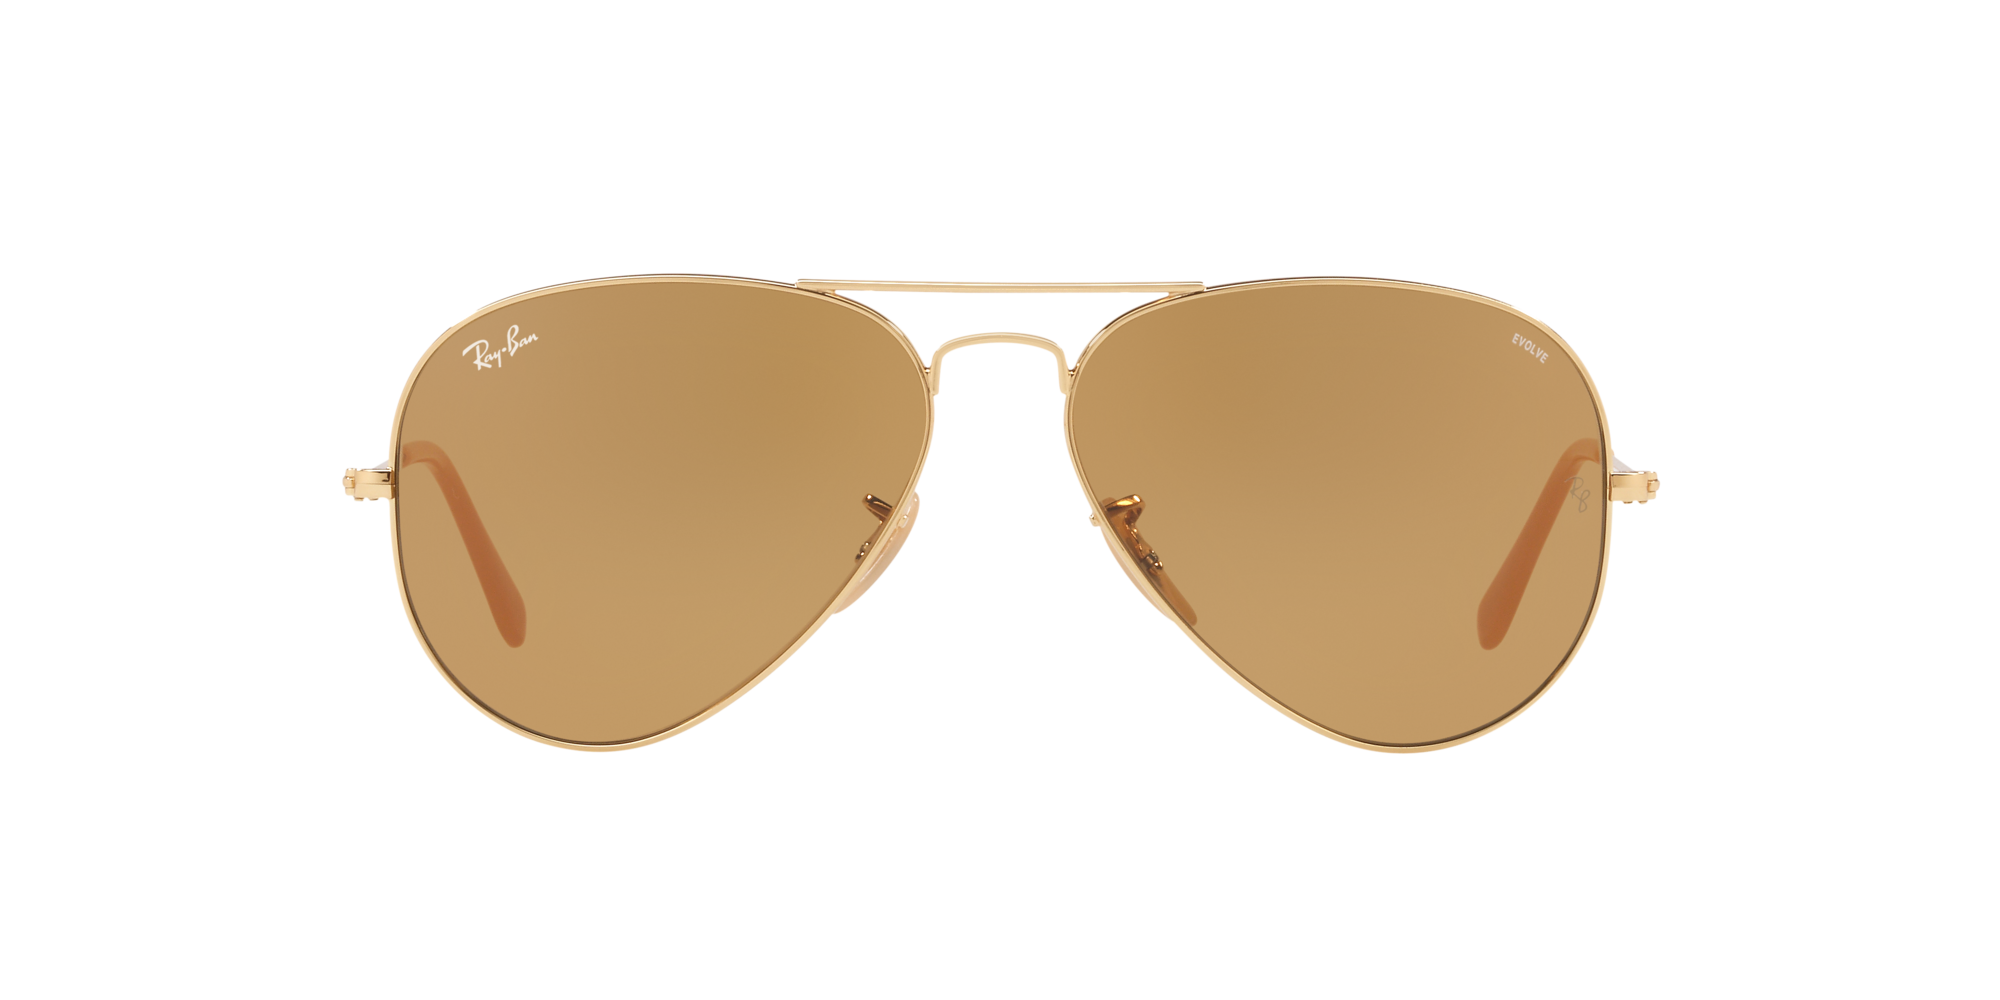 RAY-BAN AVIATOR LARGE METAL RB 3025 90644I FOTOCROMATICAS-360